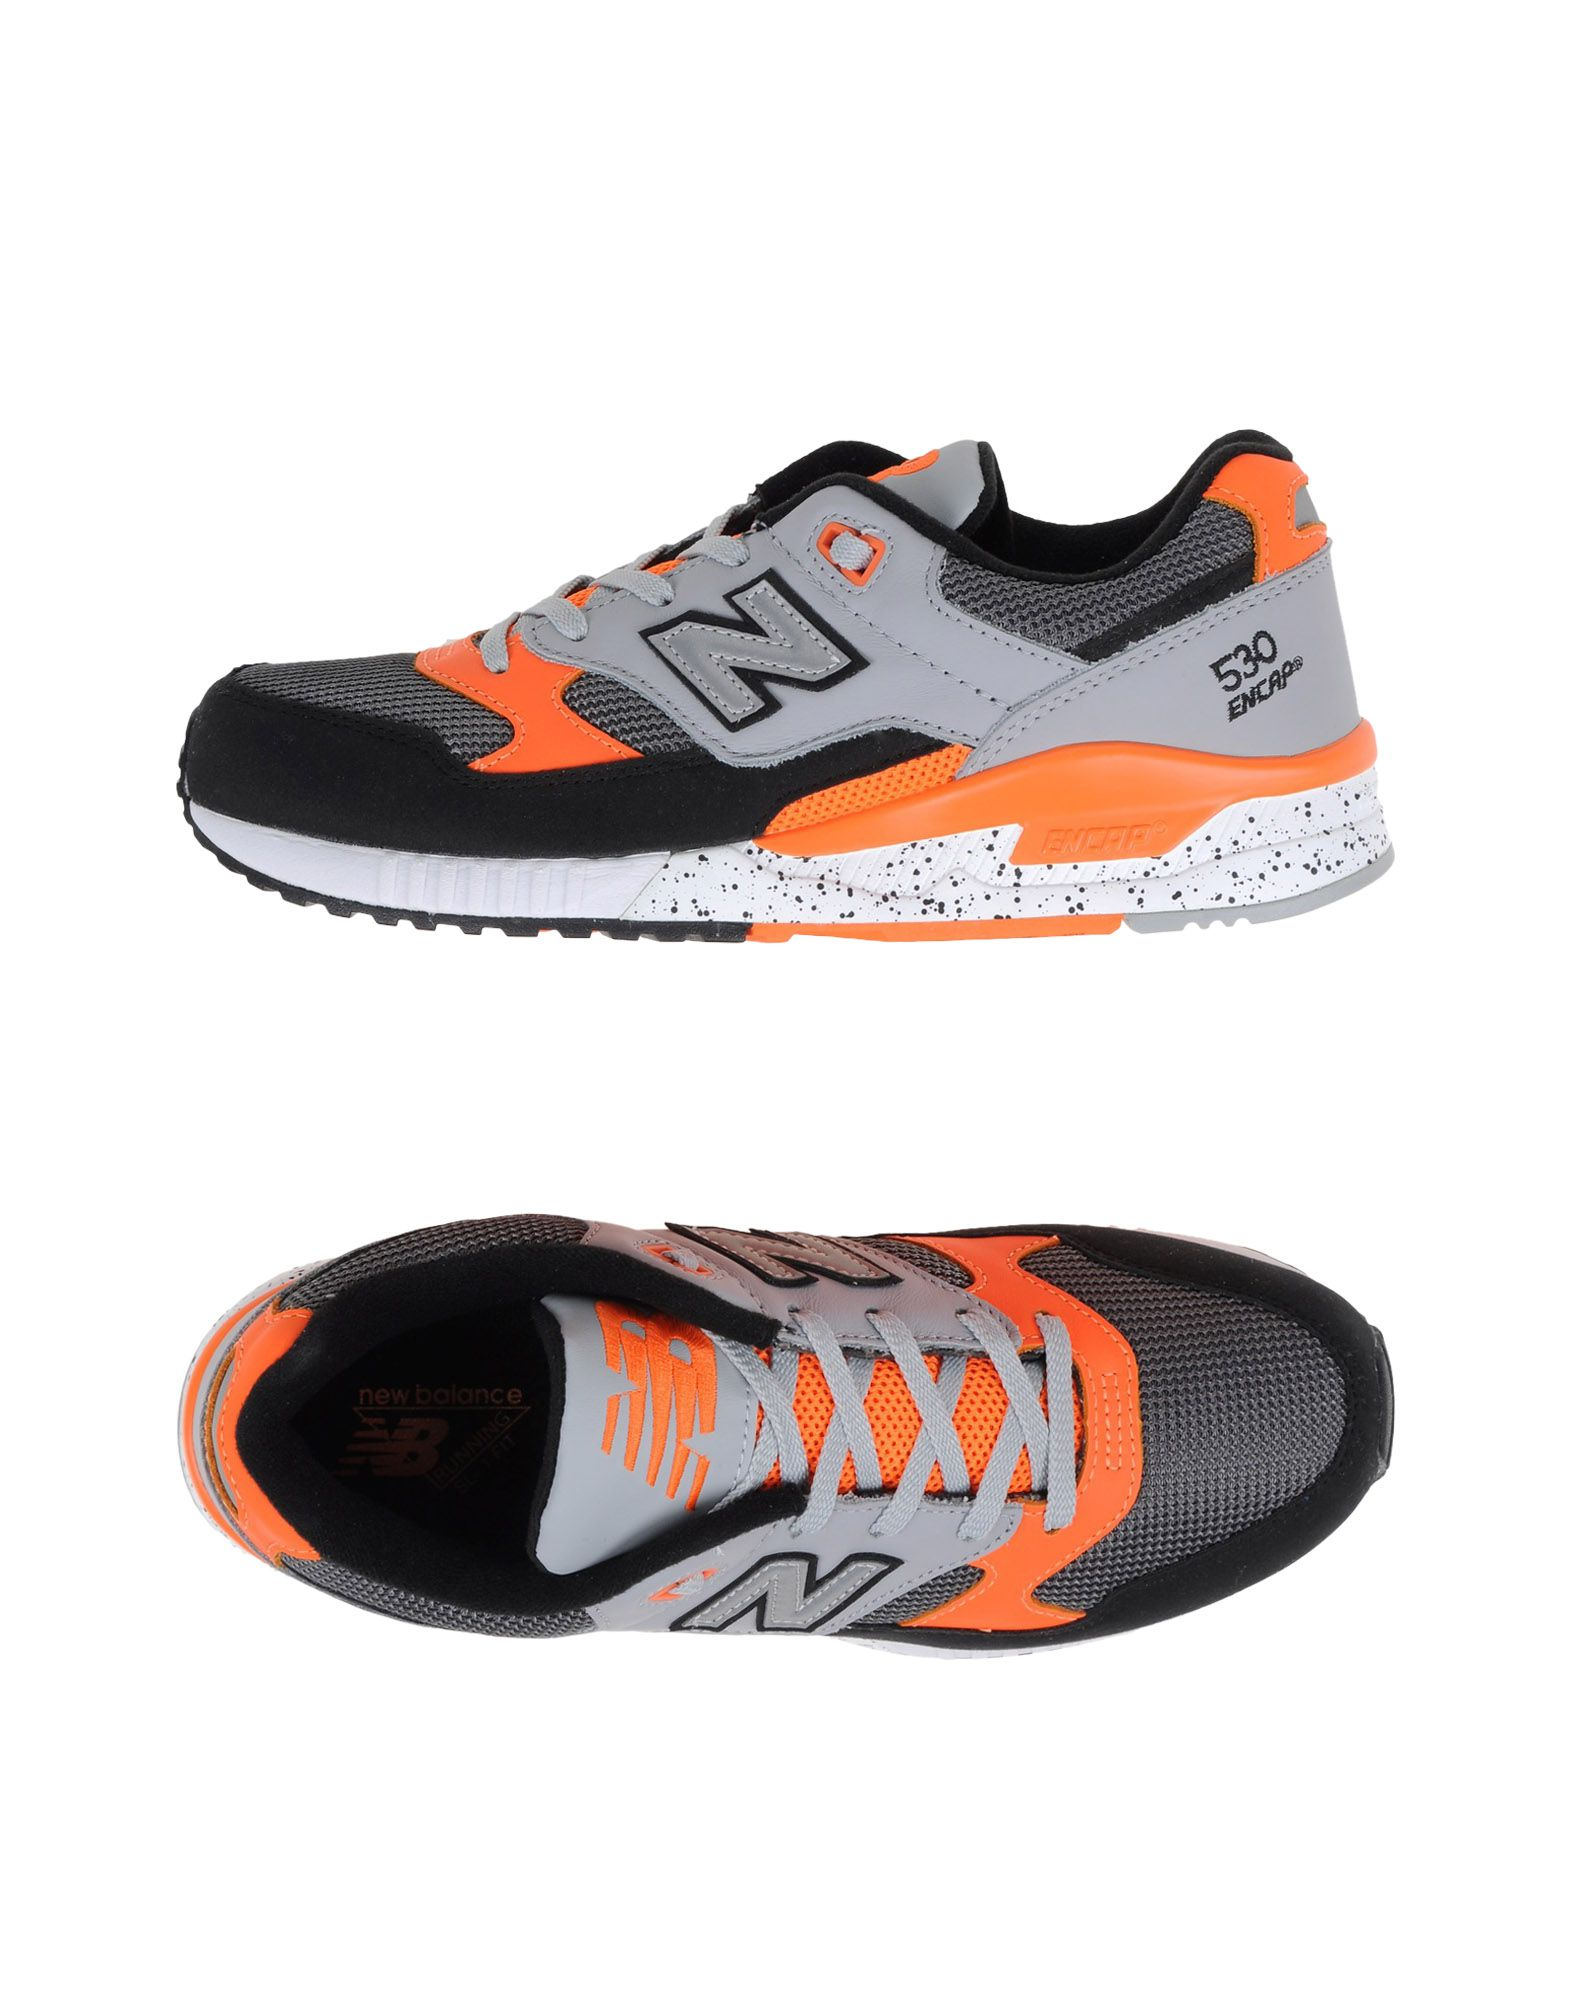 New Balance Shoes For Les